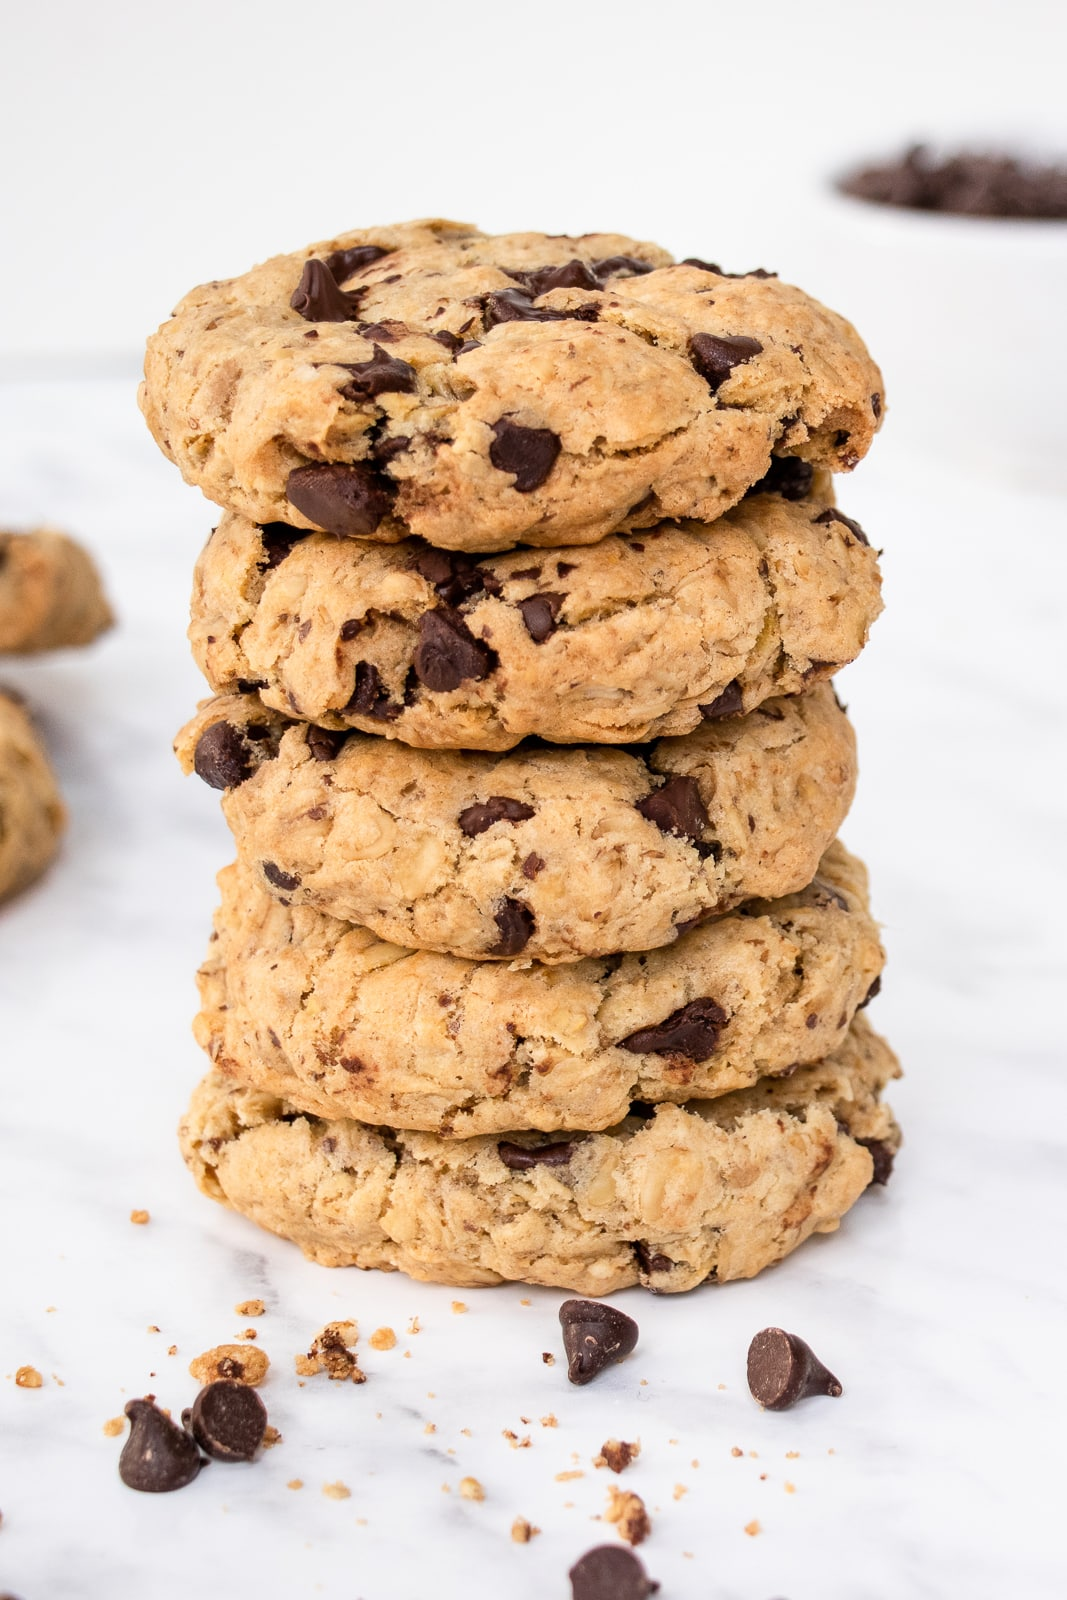 Close-up shot of a stack of 5 thick oatmeal chocolate chip cookies